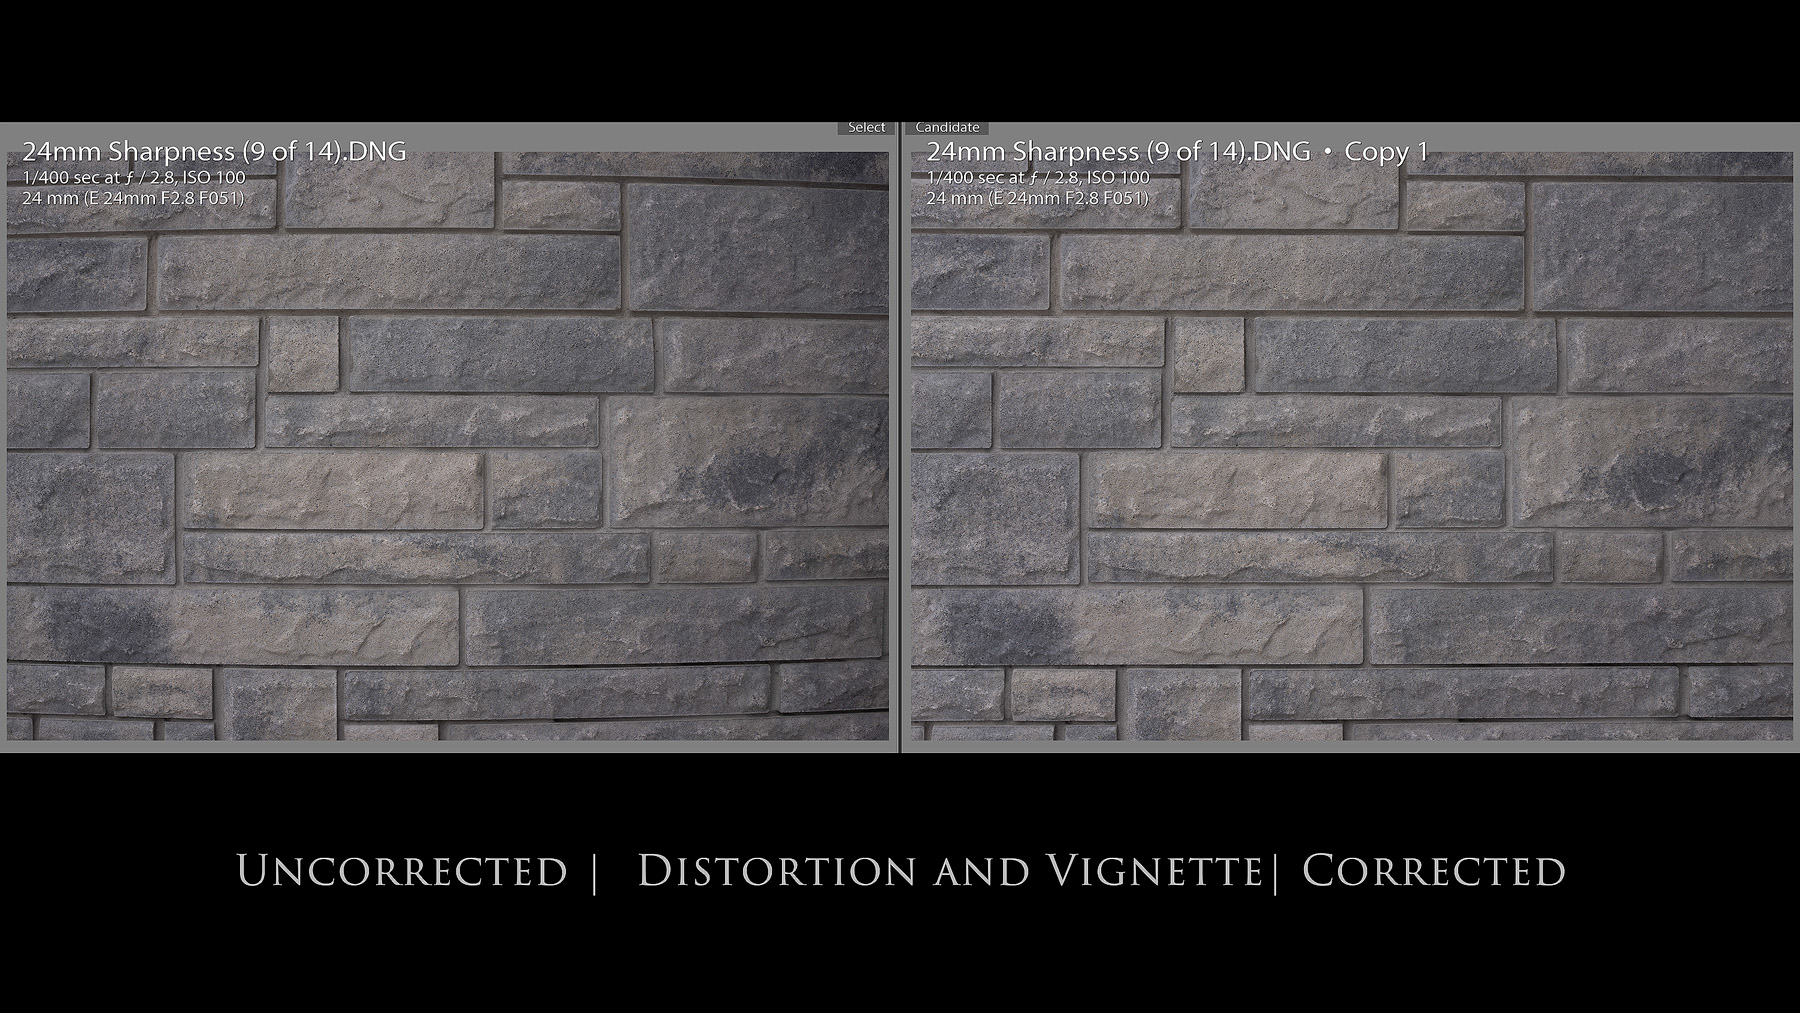 15-Distortion-and-Vignette